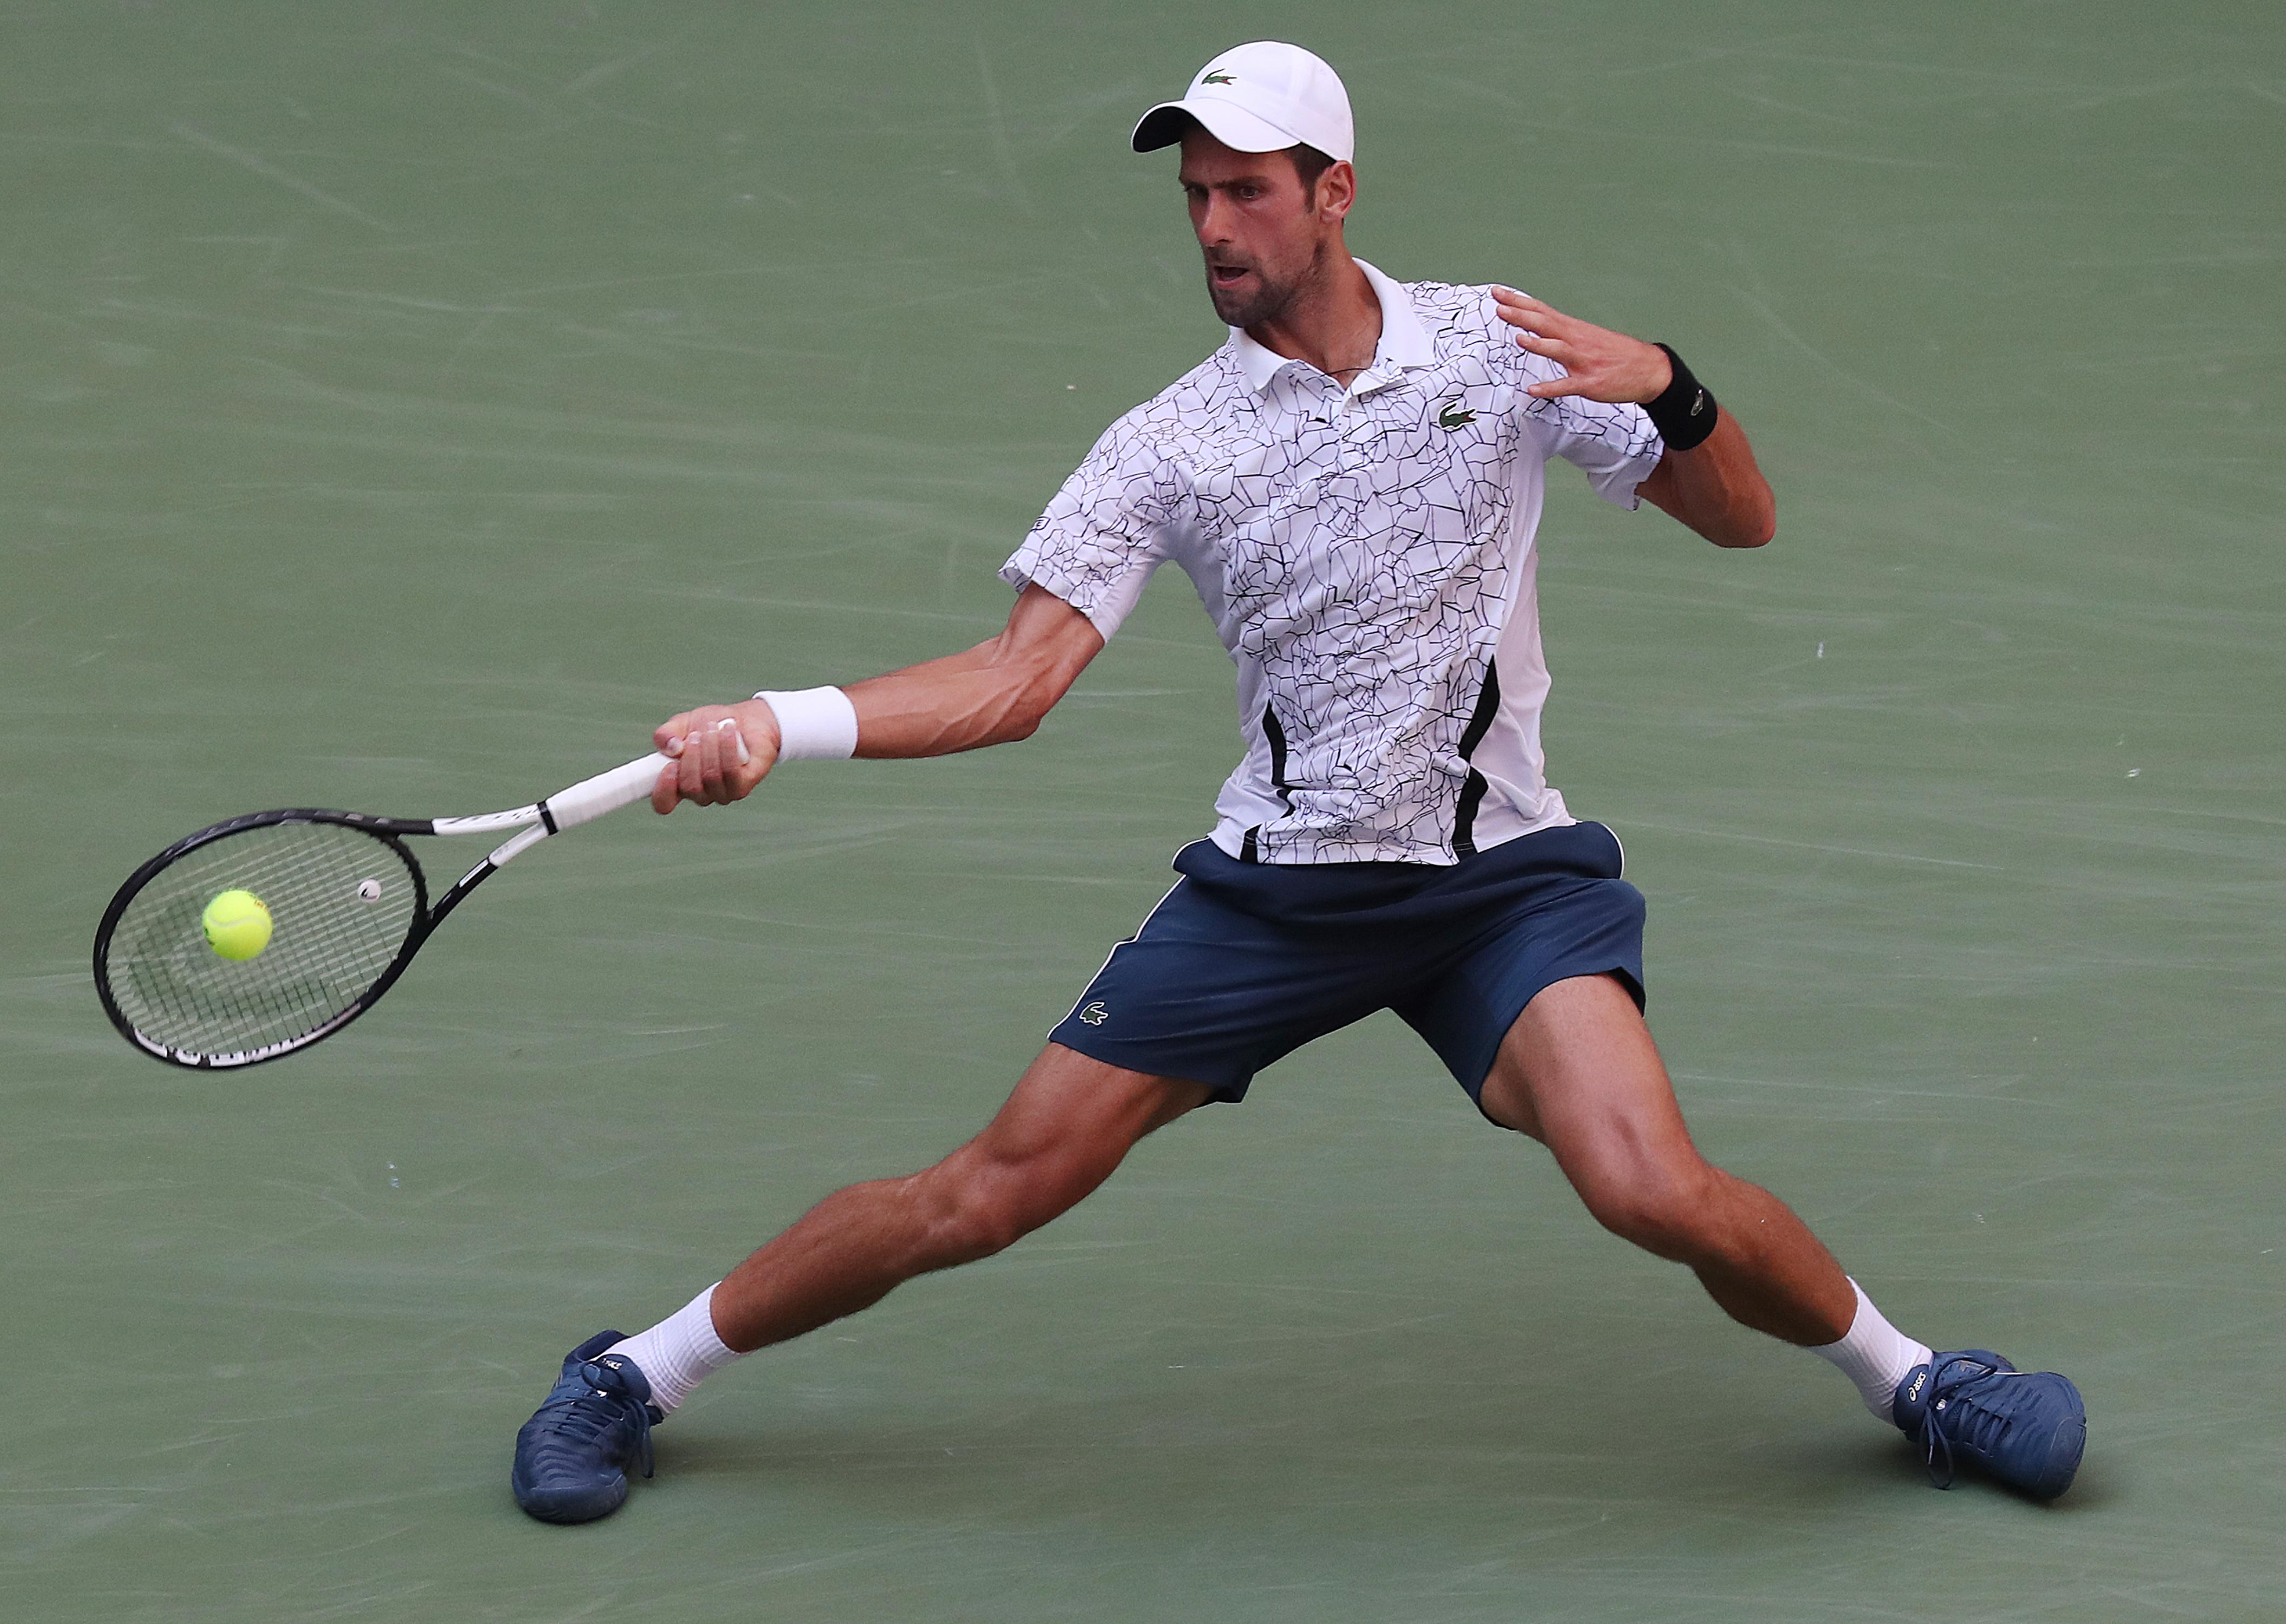 Despite his struggles, Djokovic battled through to reach his 11th quarter-final at the US Open